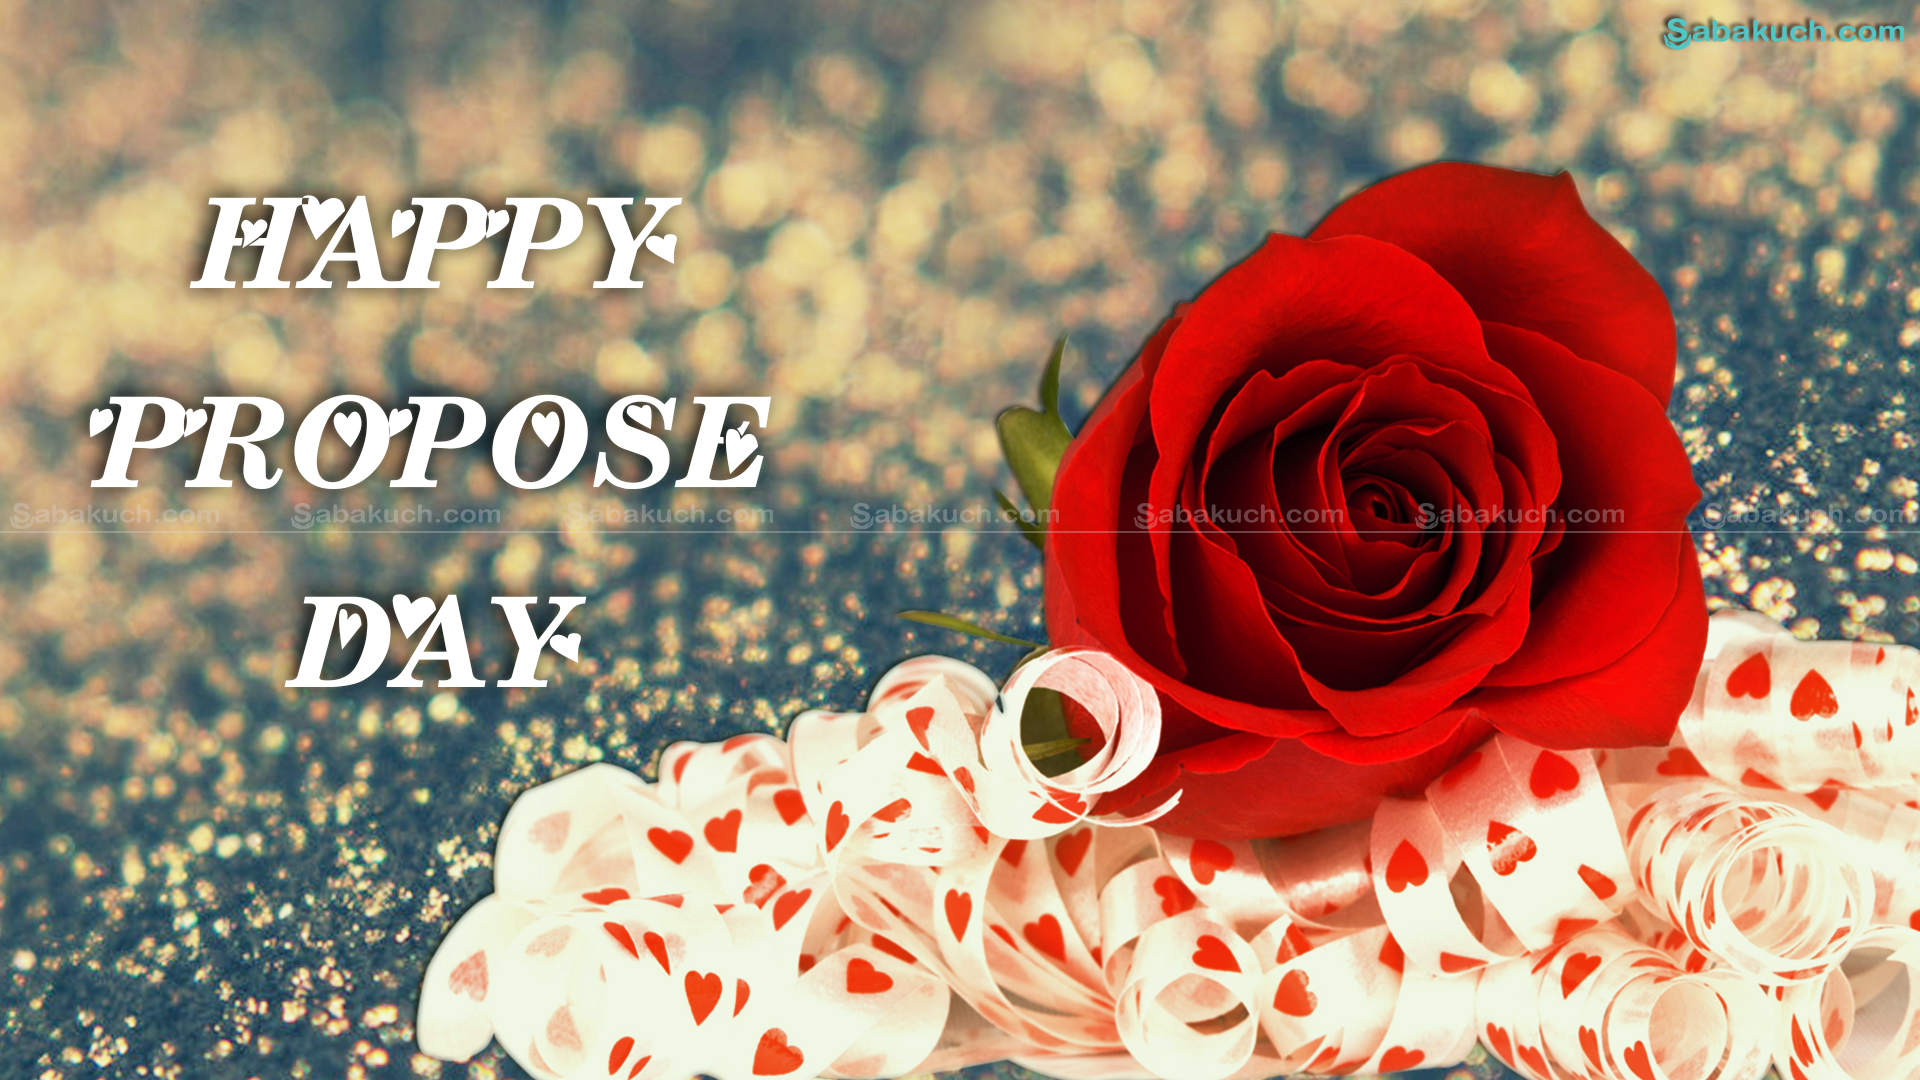 propose day 7 feb